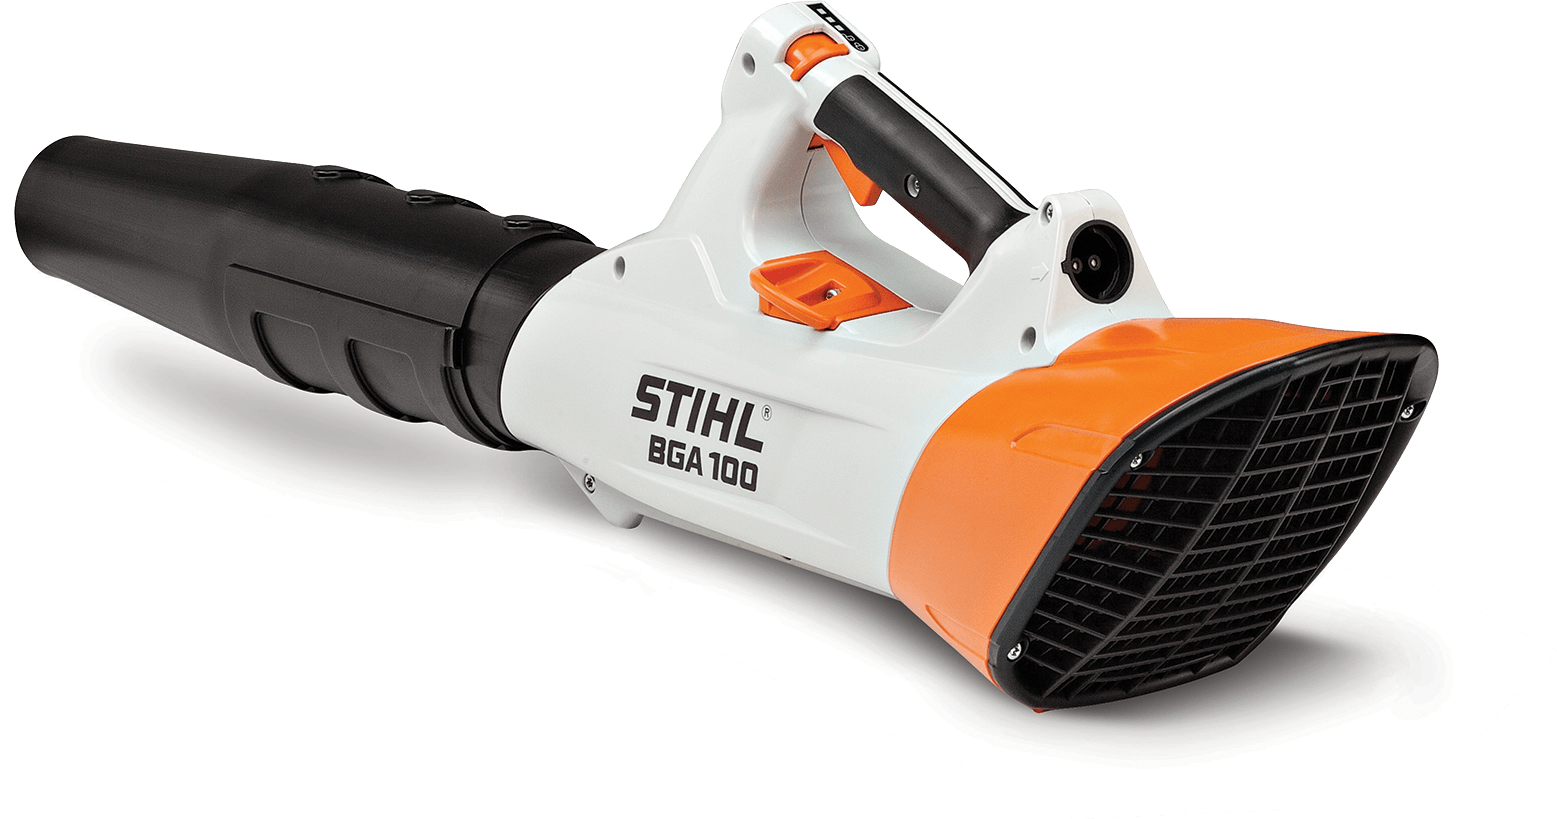 Battery Powered Leaf Blowers Battery Operated Blowers Stihl Lightning Blowers Stihl Leaf Blowers